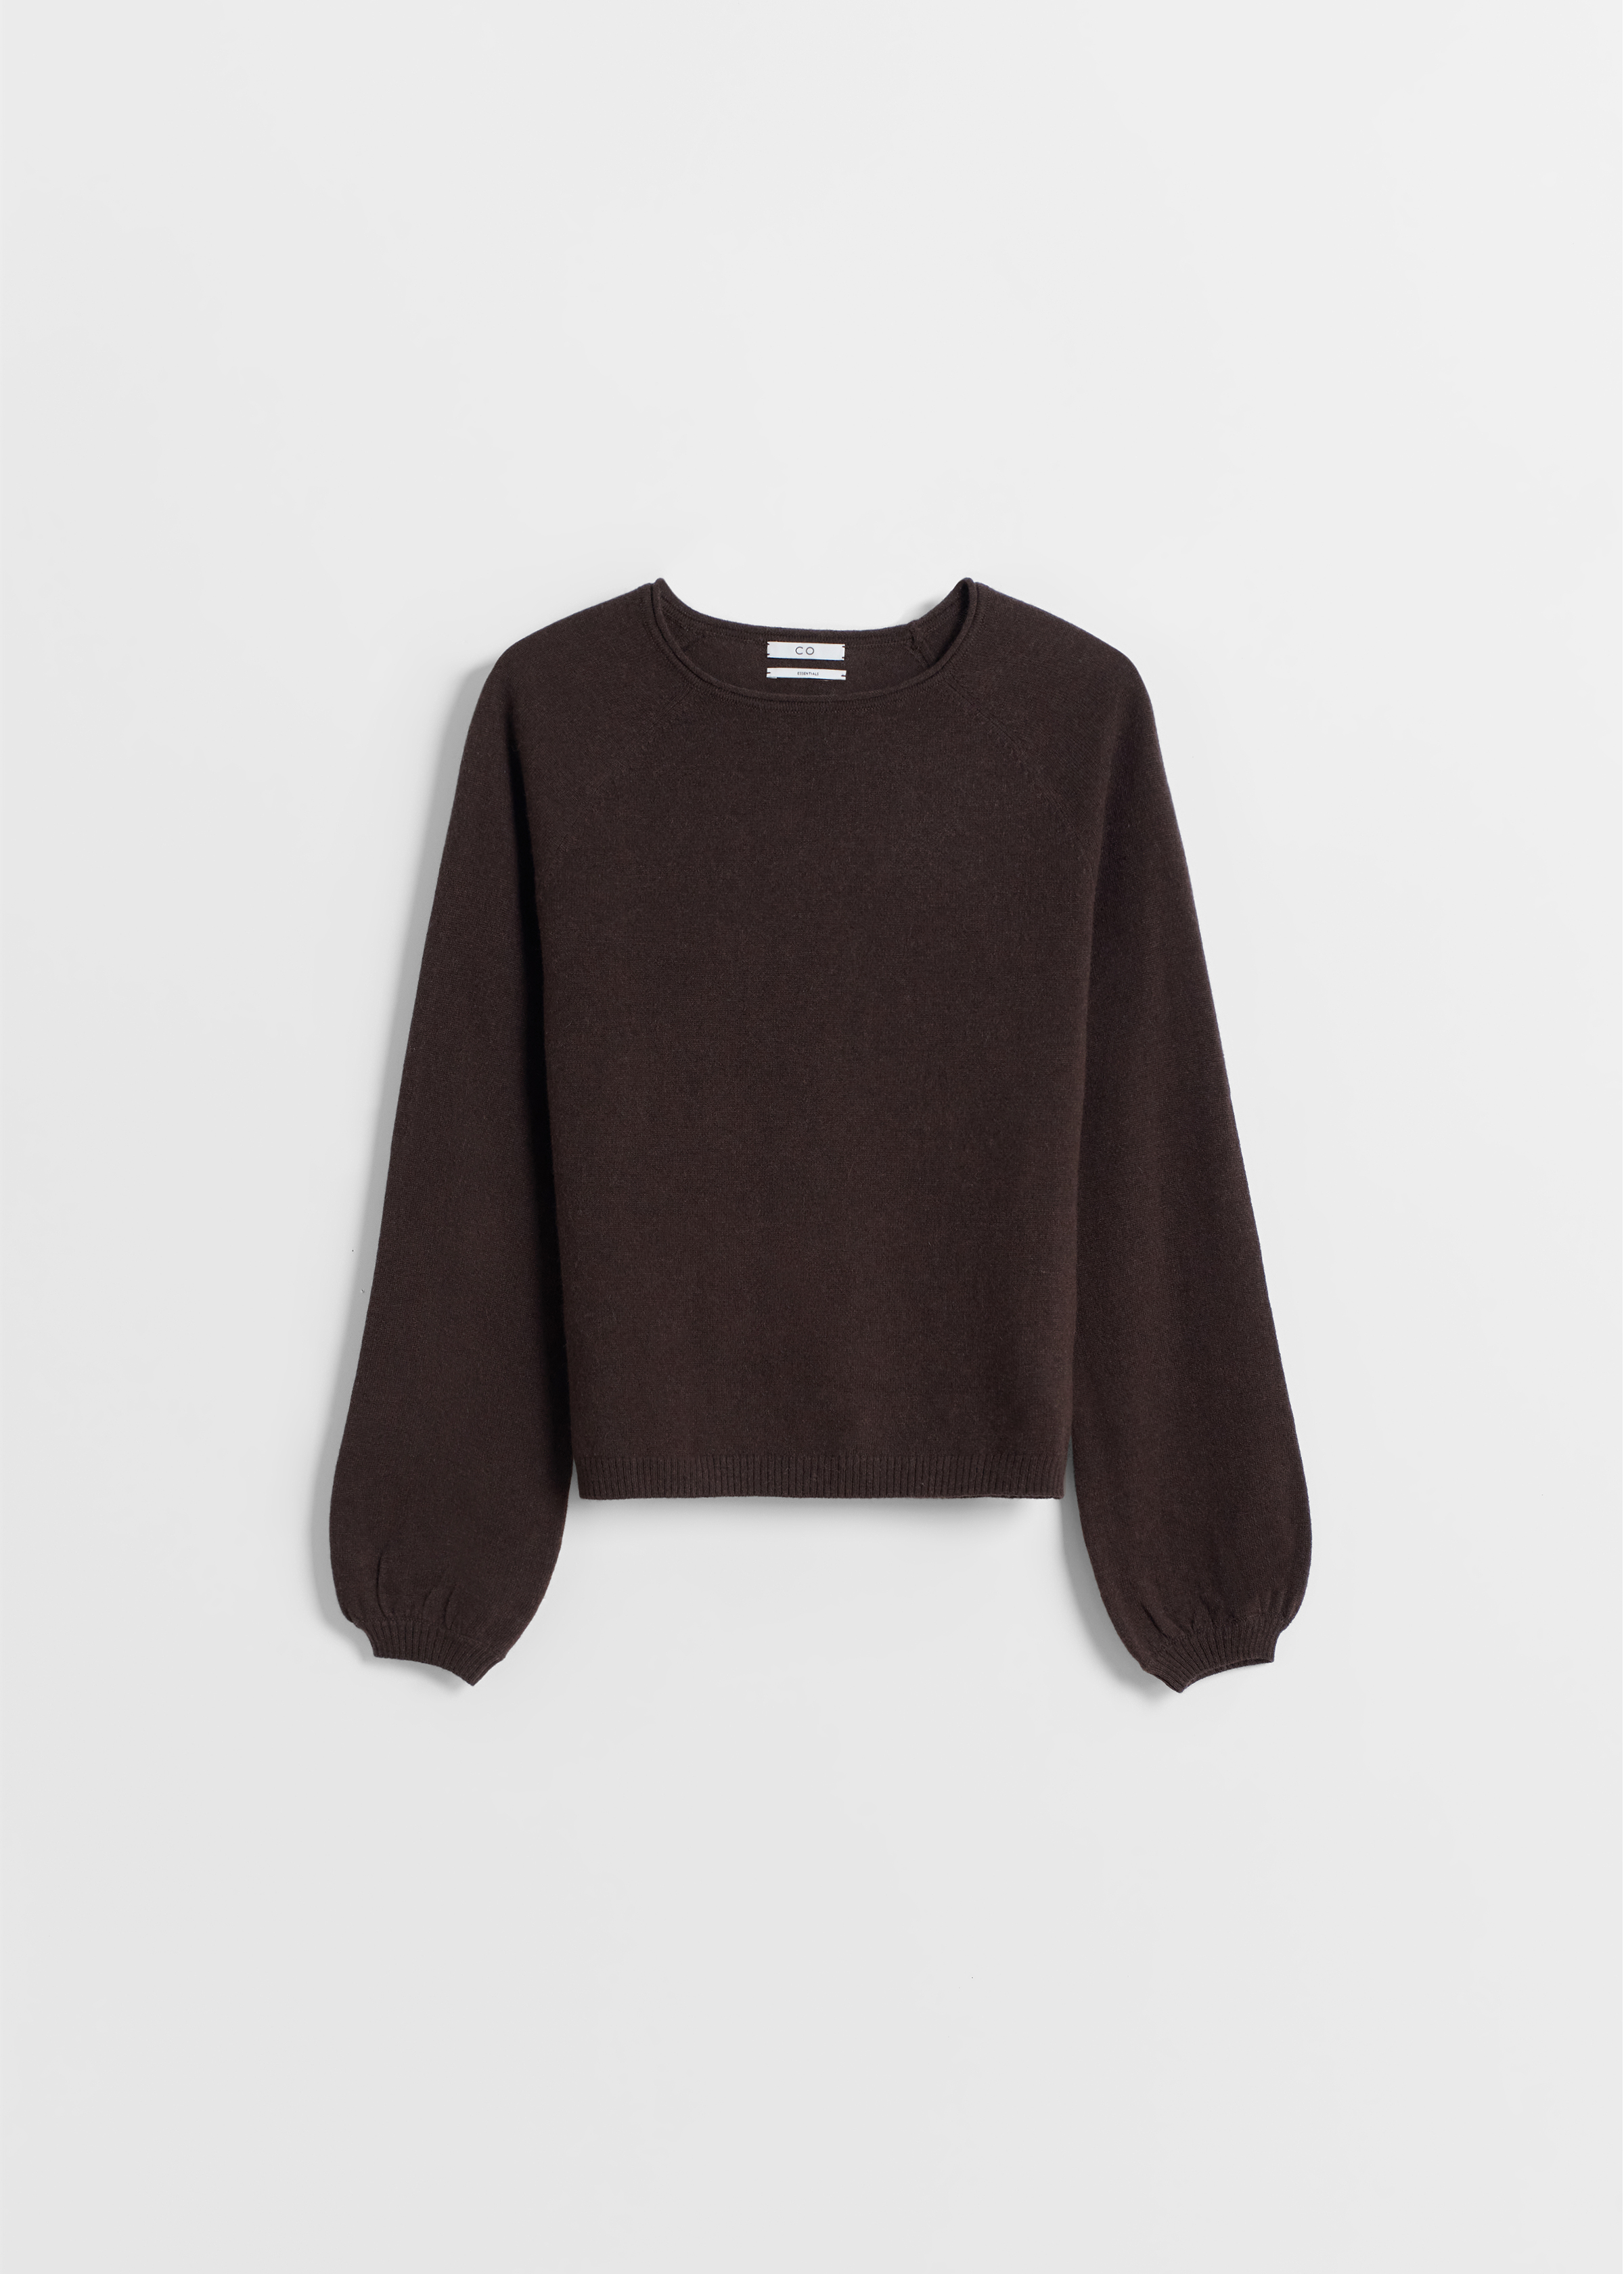 Raglan Peasant Sleeve Sweater - Black in Brown by Co Collections